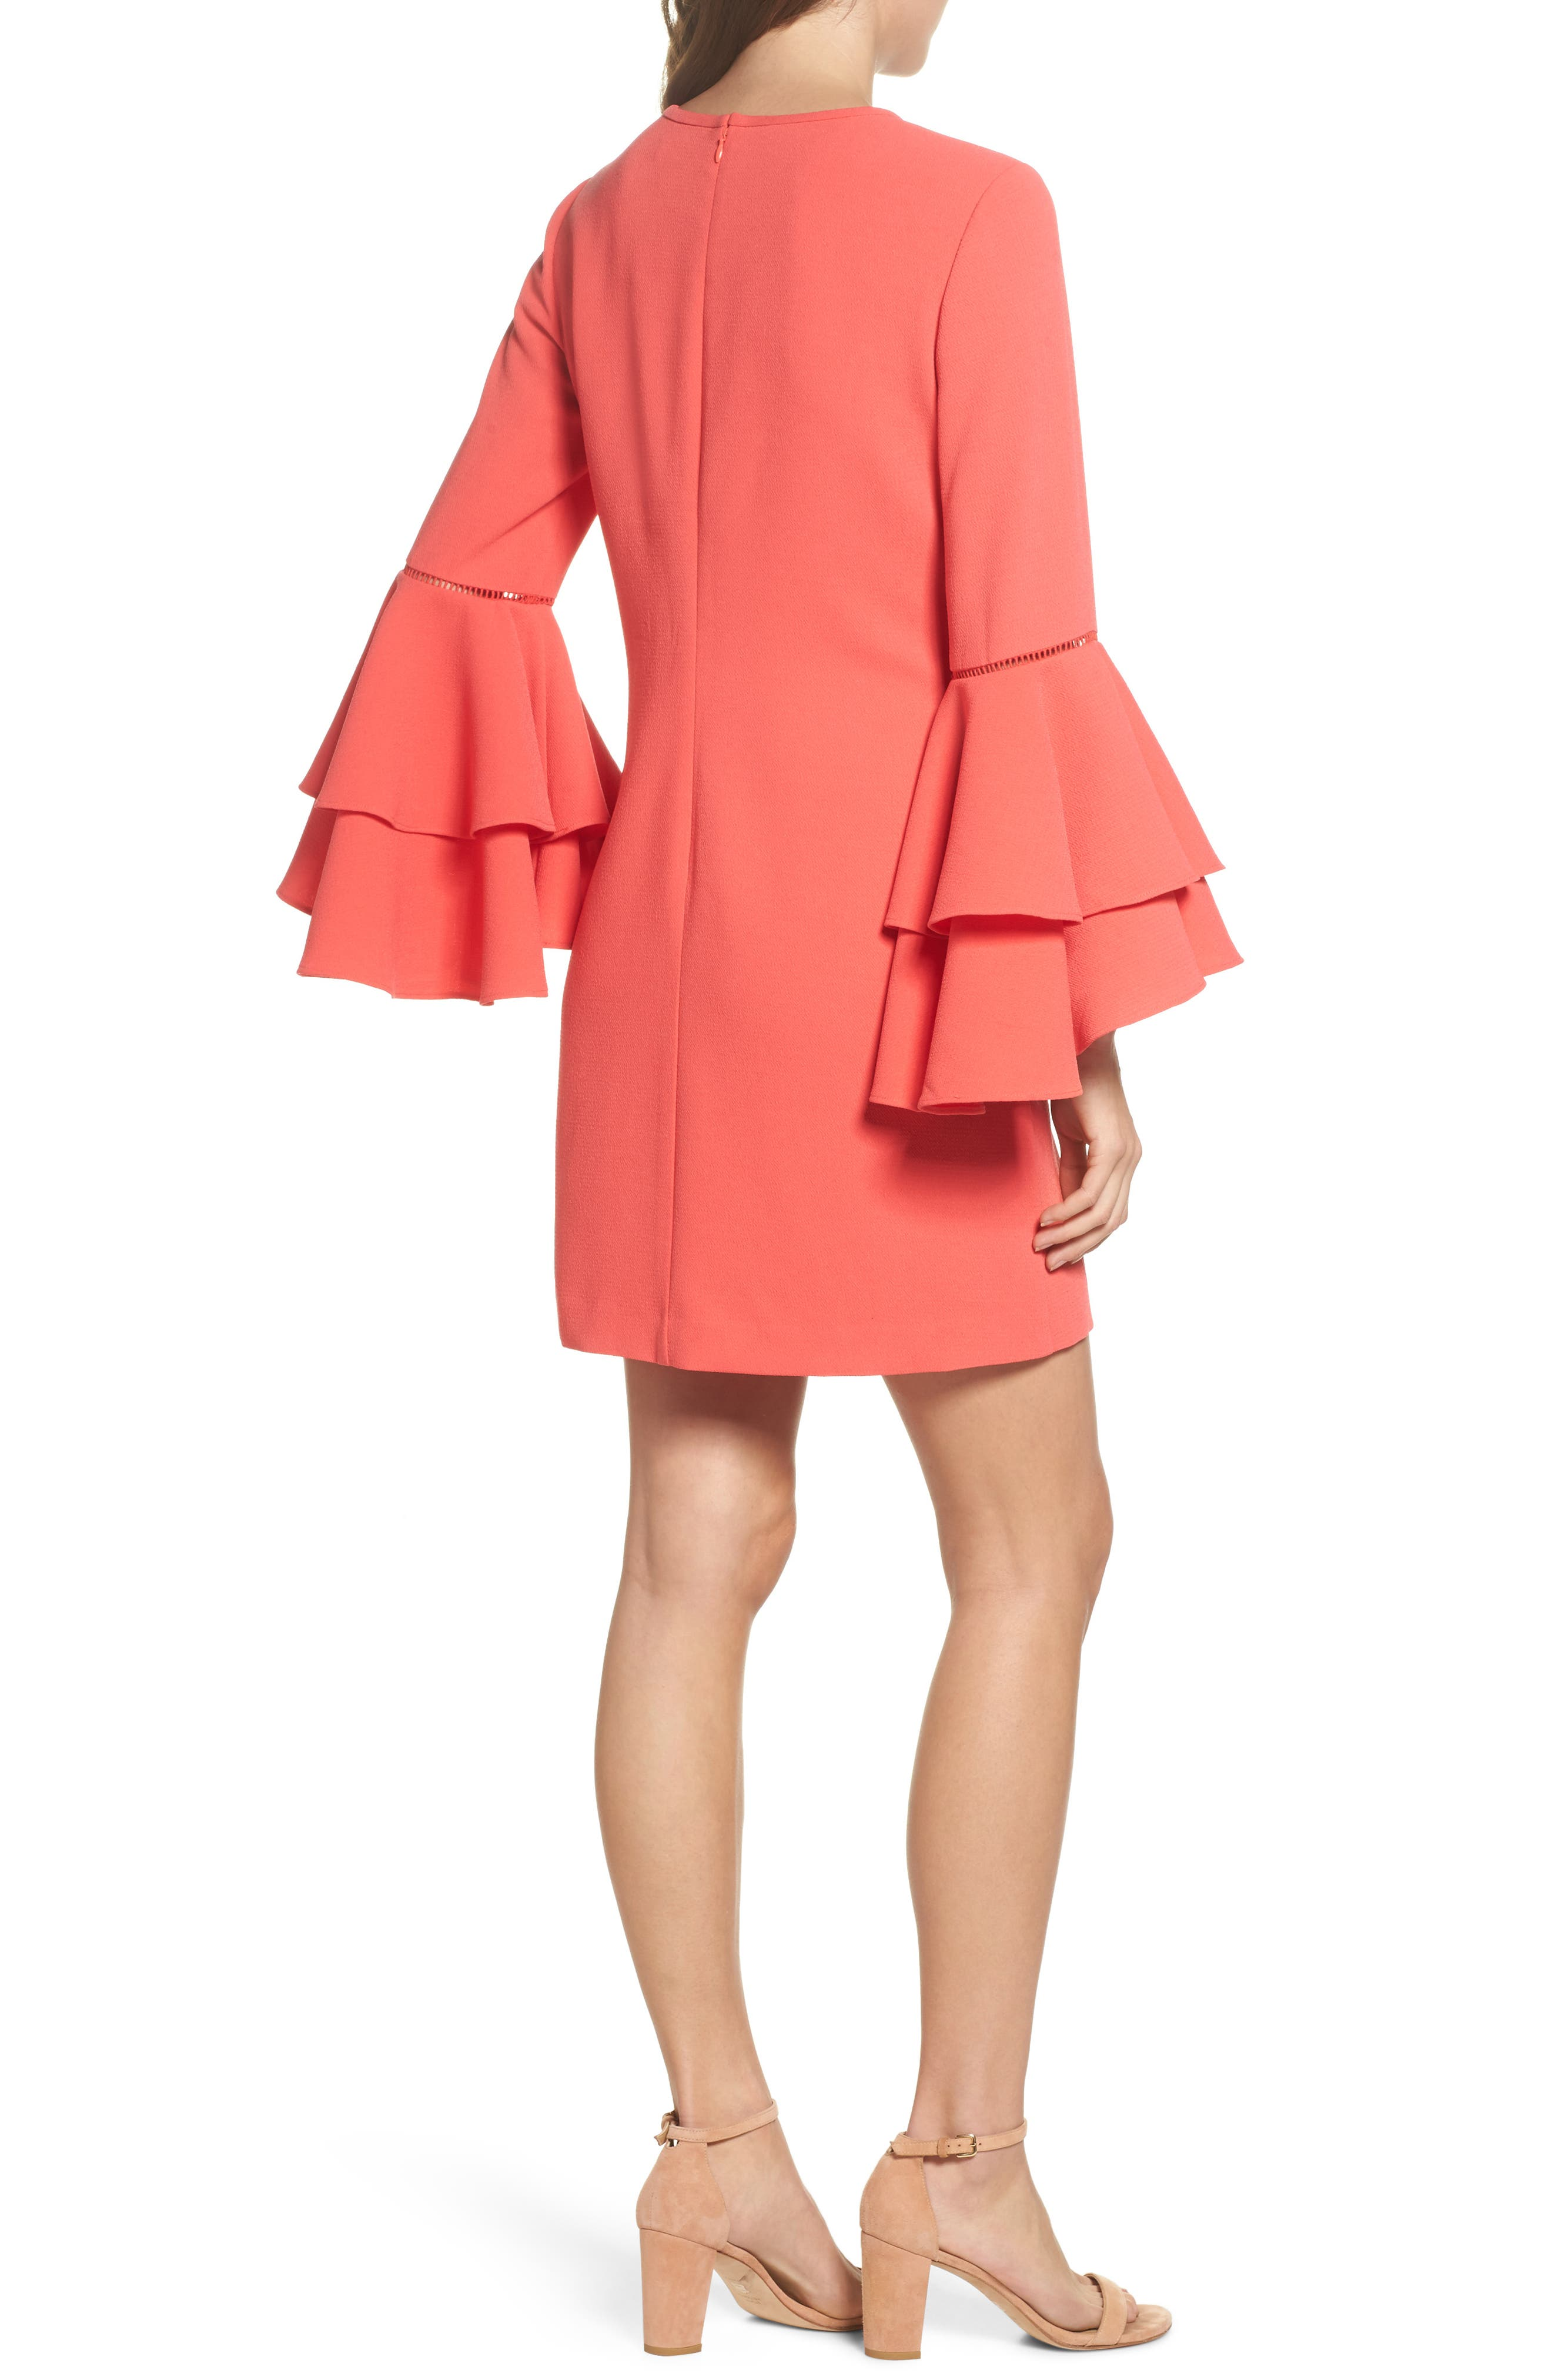 Tiered Bell Sleeve Shift Dress,                             Alternate thumbnail 2, color,                             Red Hibiscus